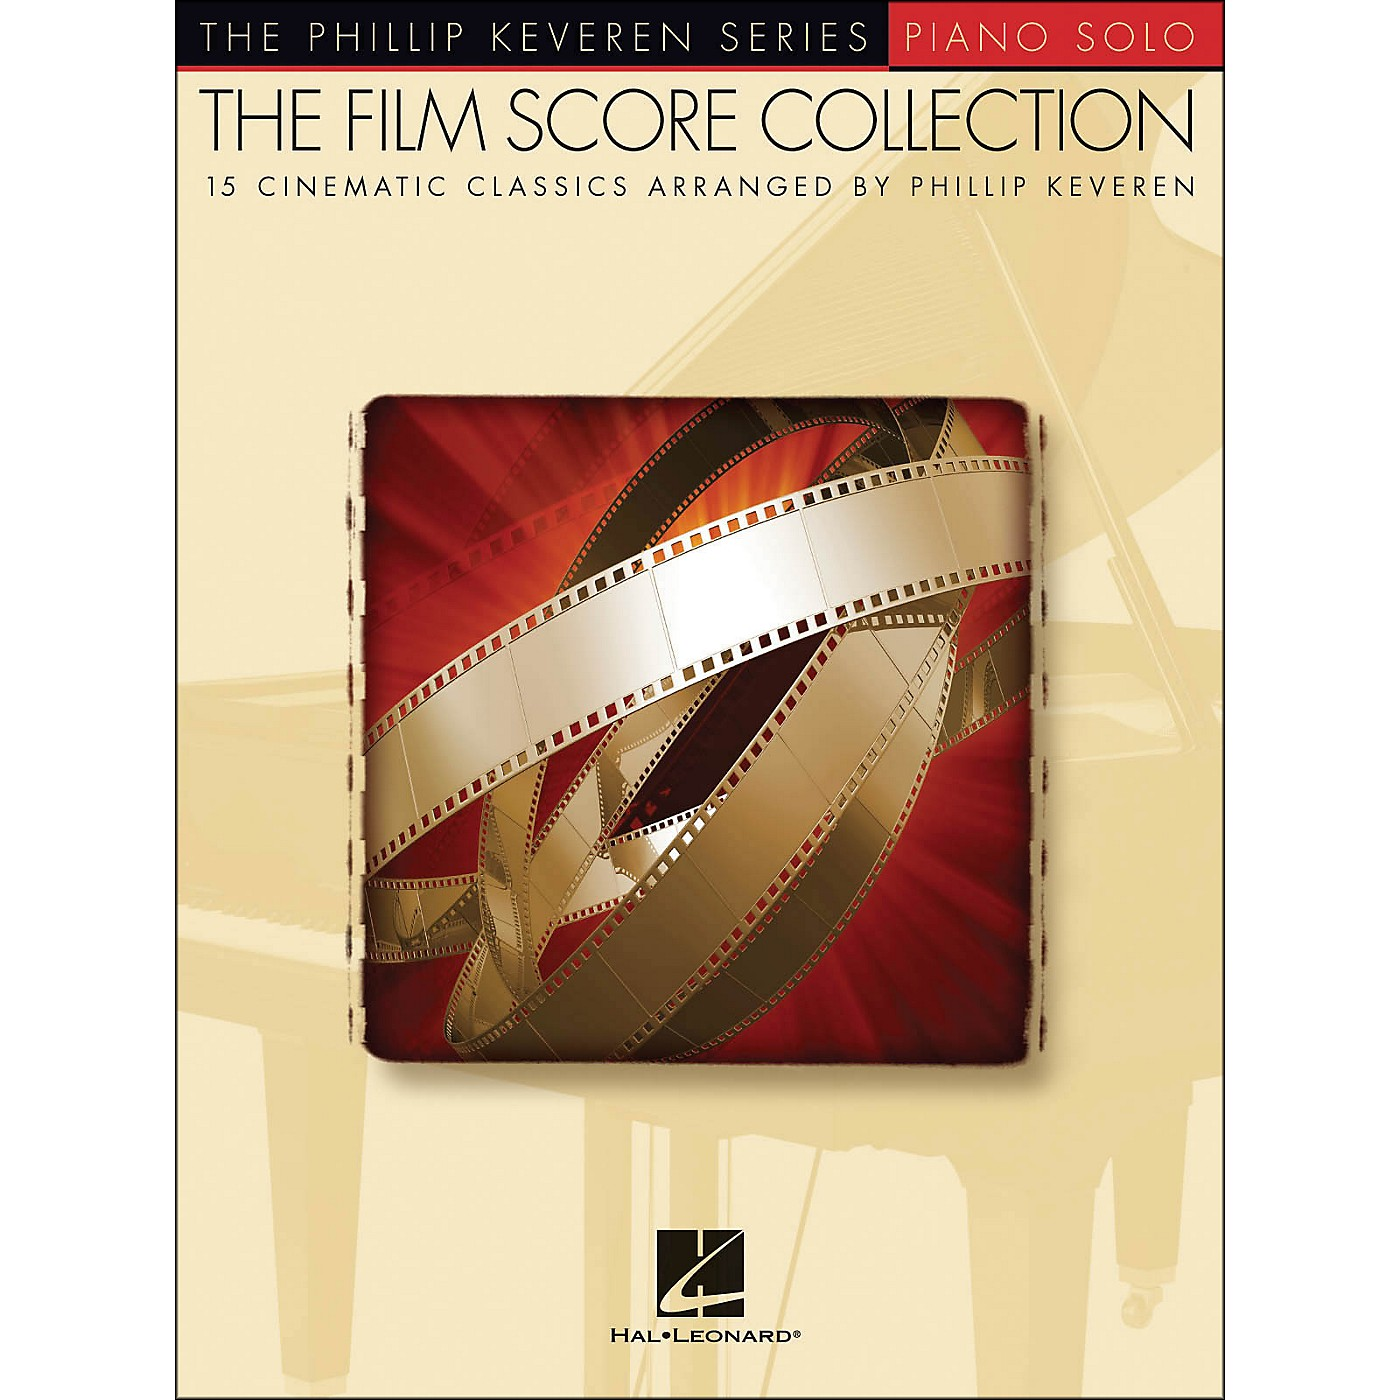 Hal Leonard The Film Score Collection - Phillip Keveren Series arranged for piano solo thumbnail